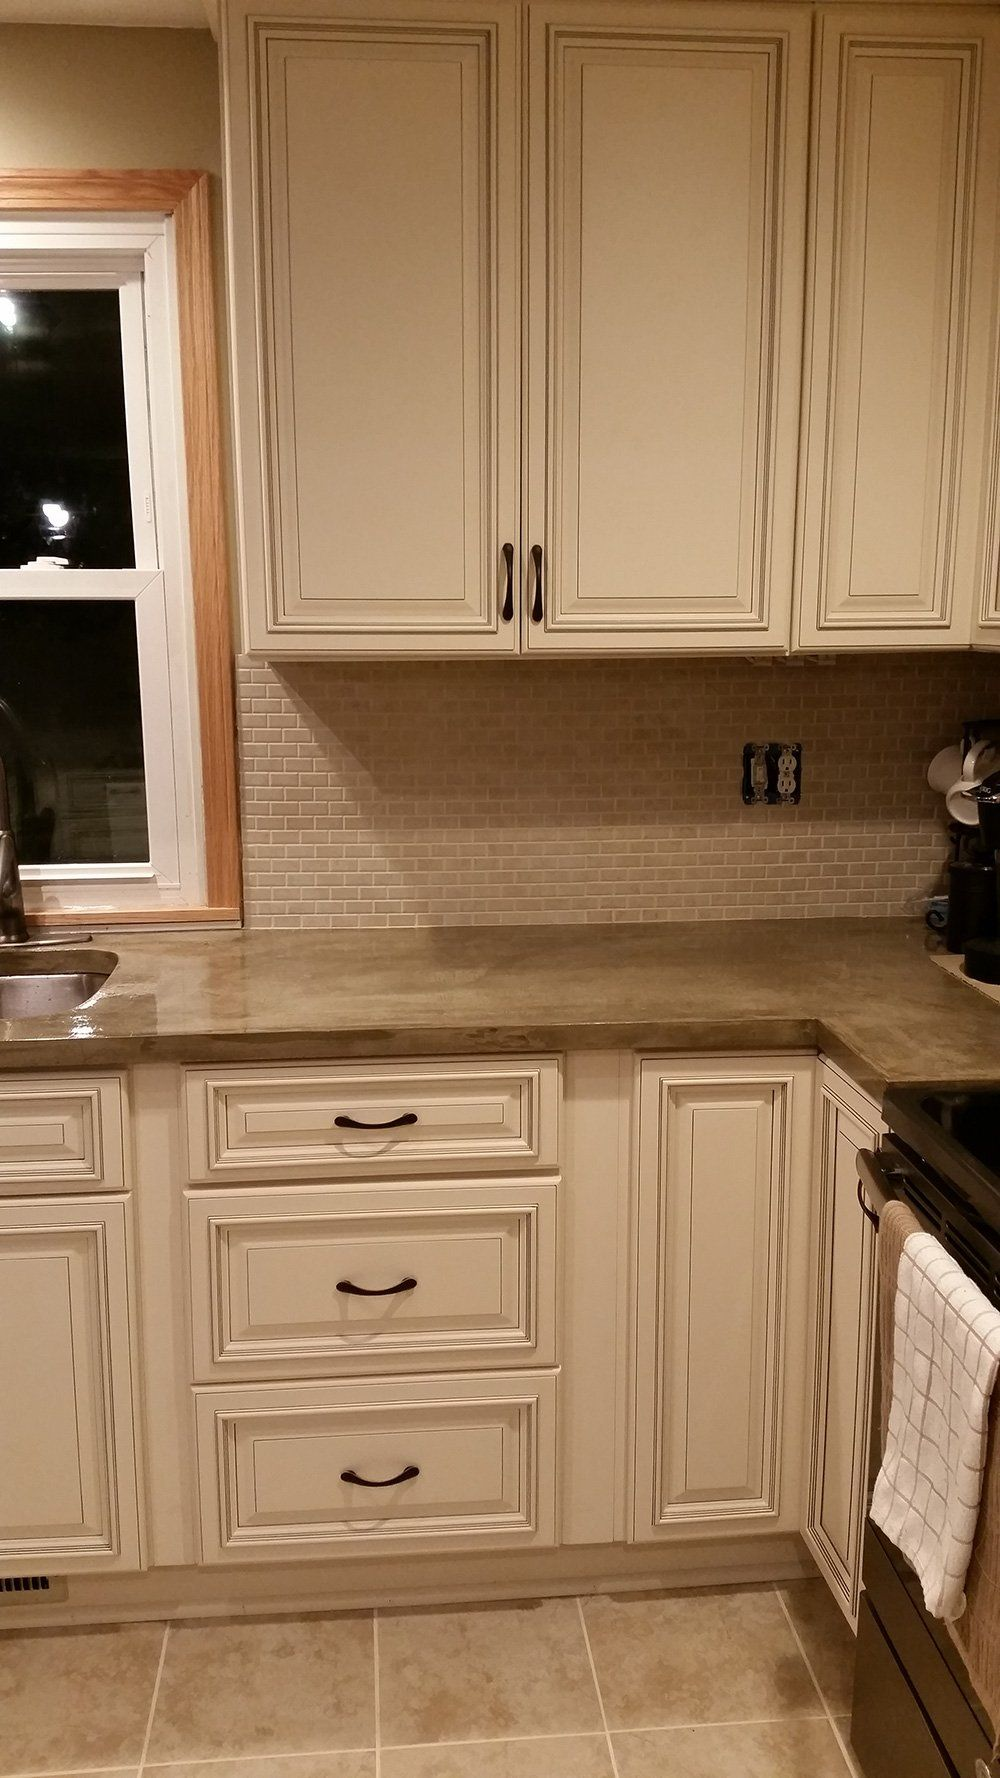 Buy Pearl Kitchen Cabinets Online Pearl Assembled Kitchen Cabinets Have A Finished Matching In Online Kitchen Cabinets Kitchen Cabinets Grey Kitchen Cabinets